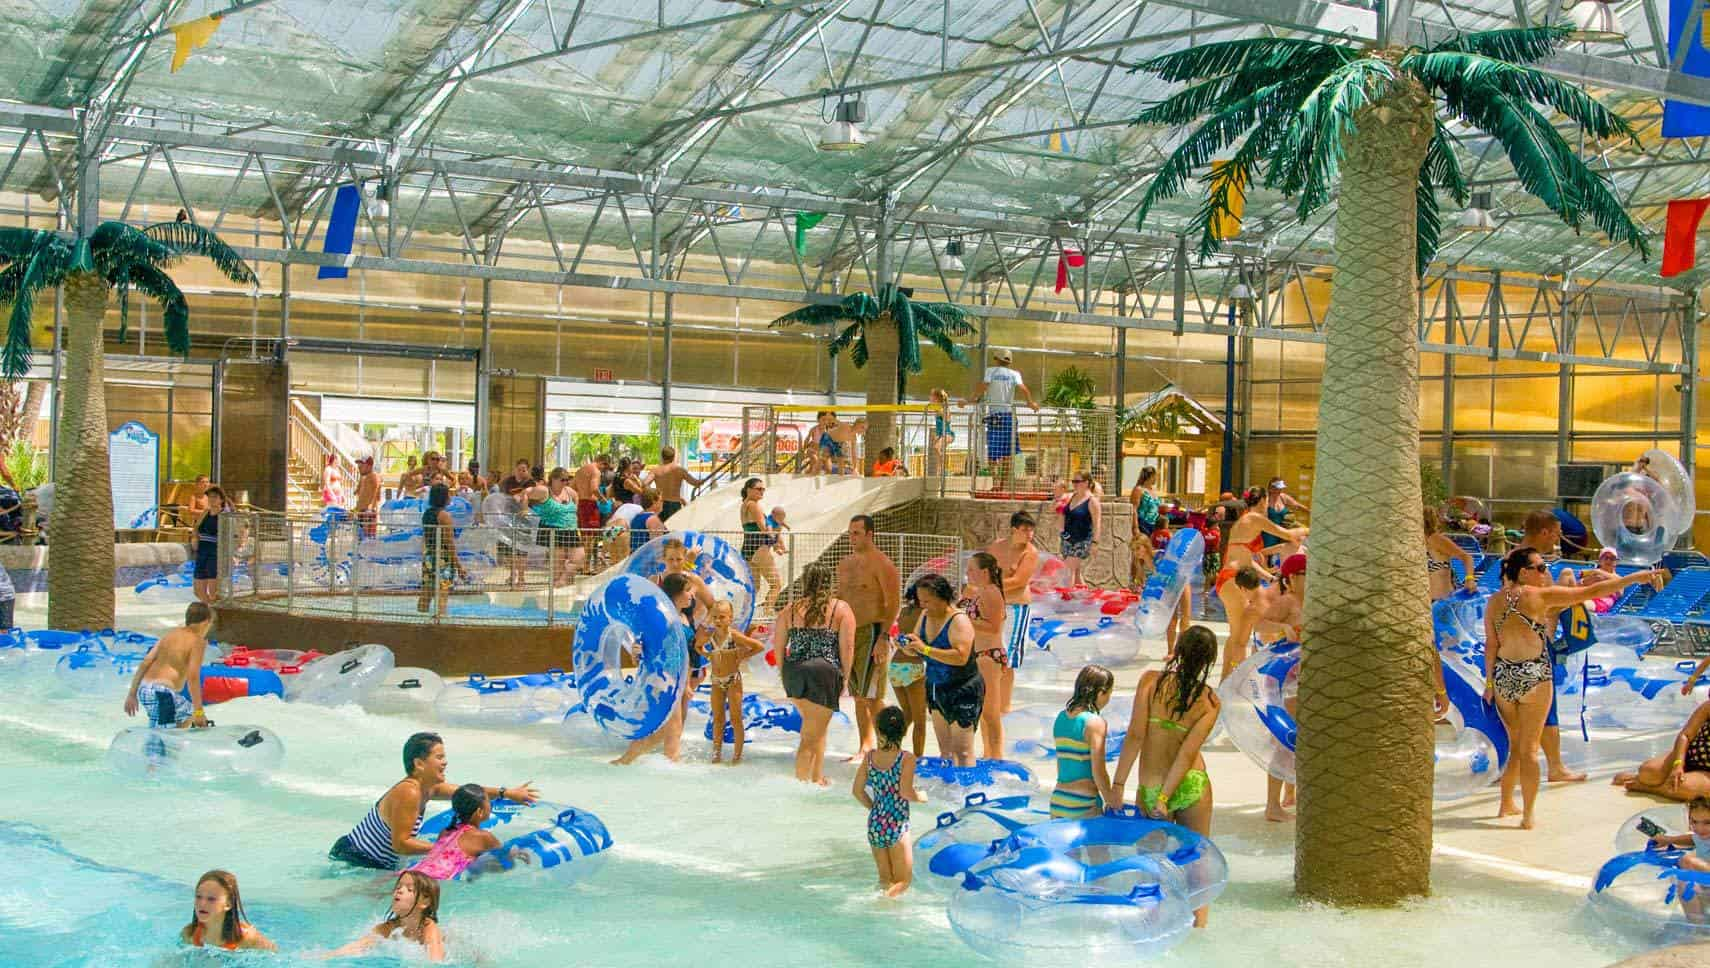 graphic about Schlitterbahn Printable Coupons called Schlitterbahn 2 working day coupon codes